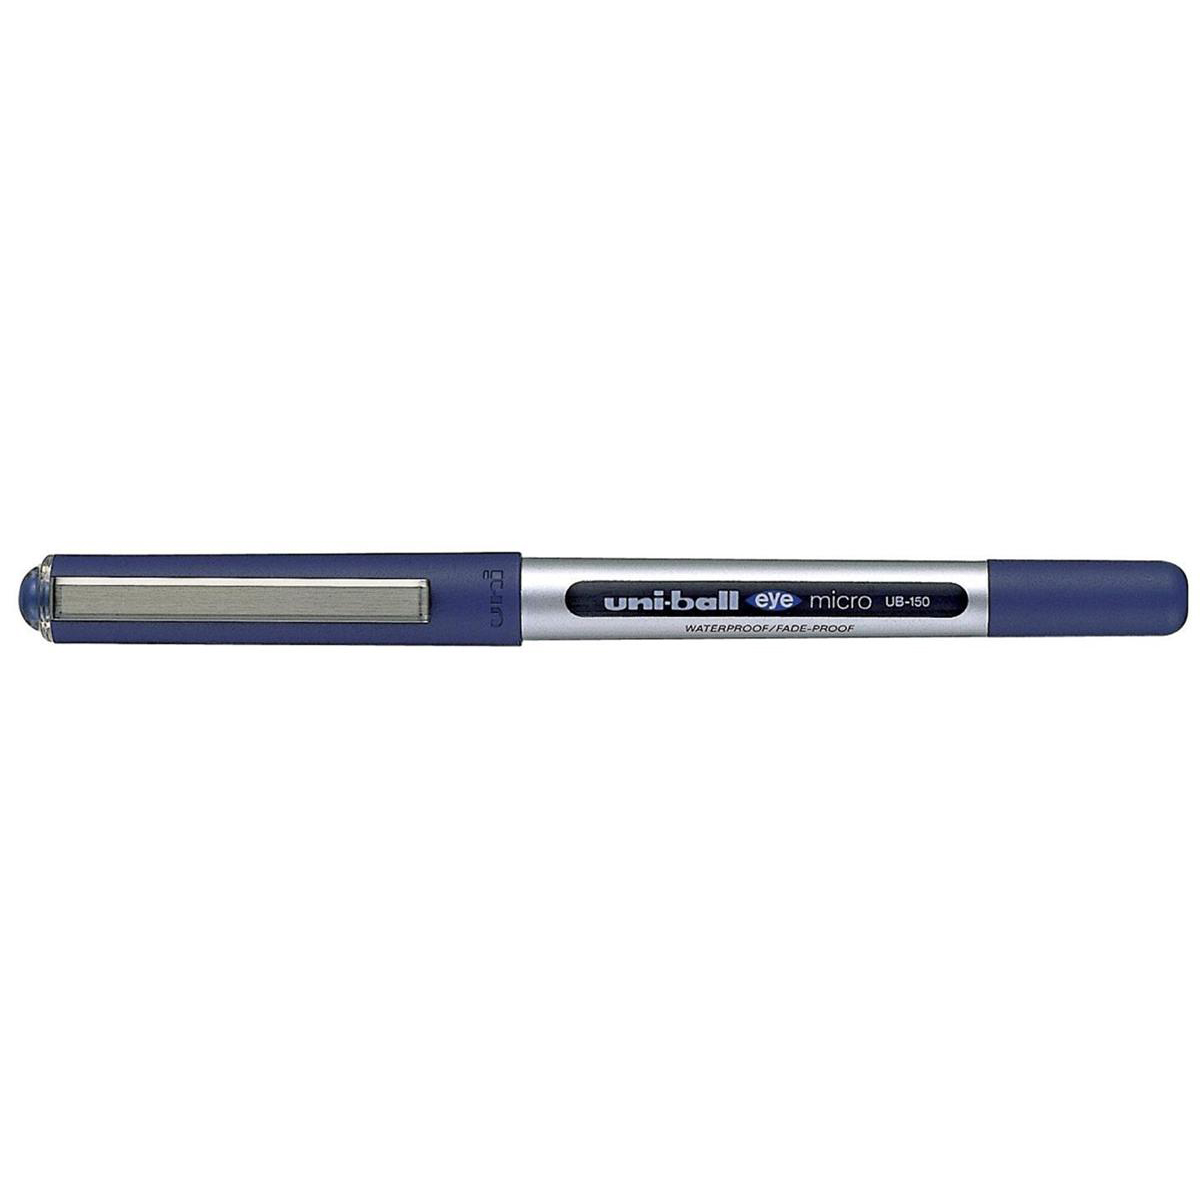 Uni-ball Eye UB150 Rollerball Pen Micro 0.5mm Tip 0.3mm Line Blue Ref 16255200 [Pack 12]